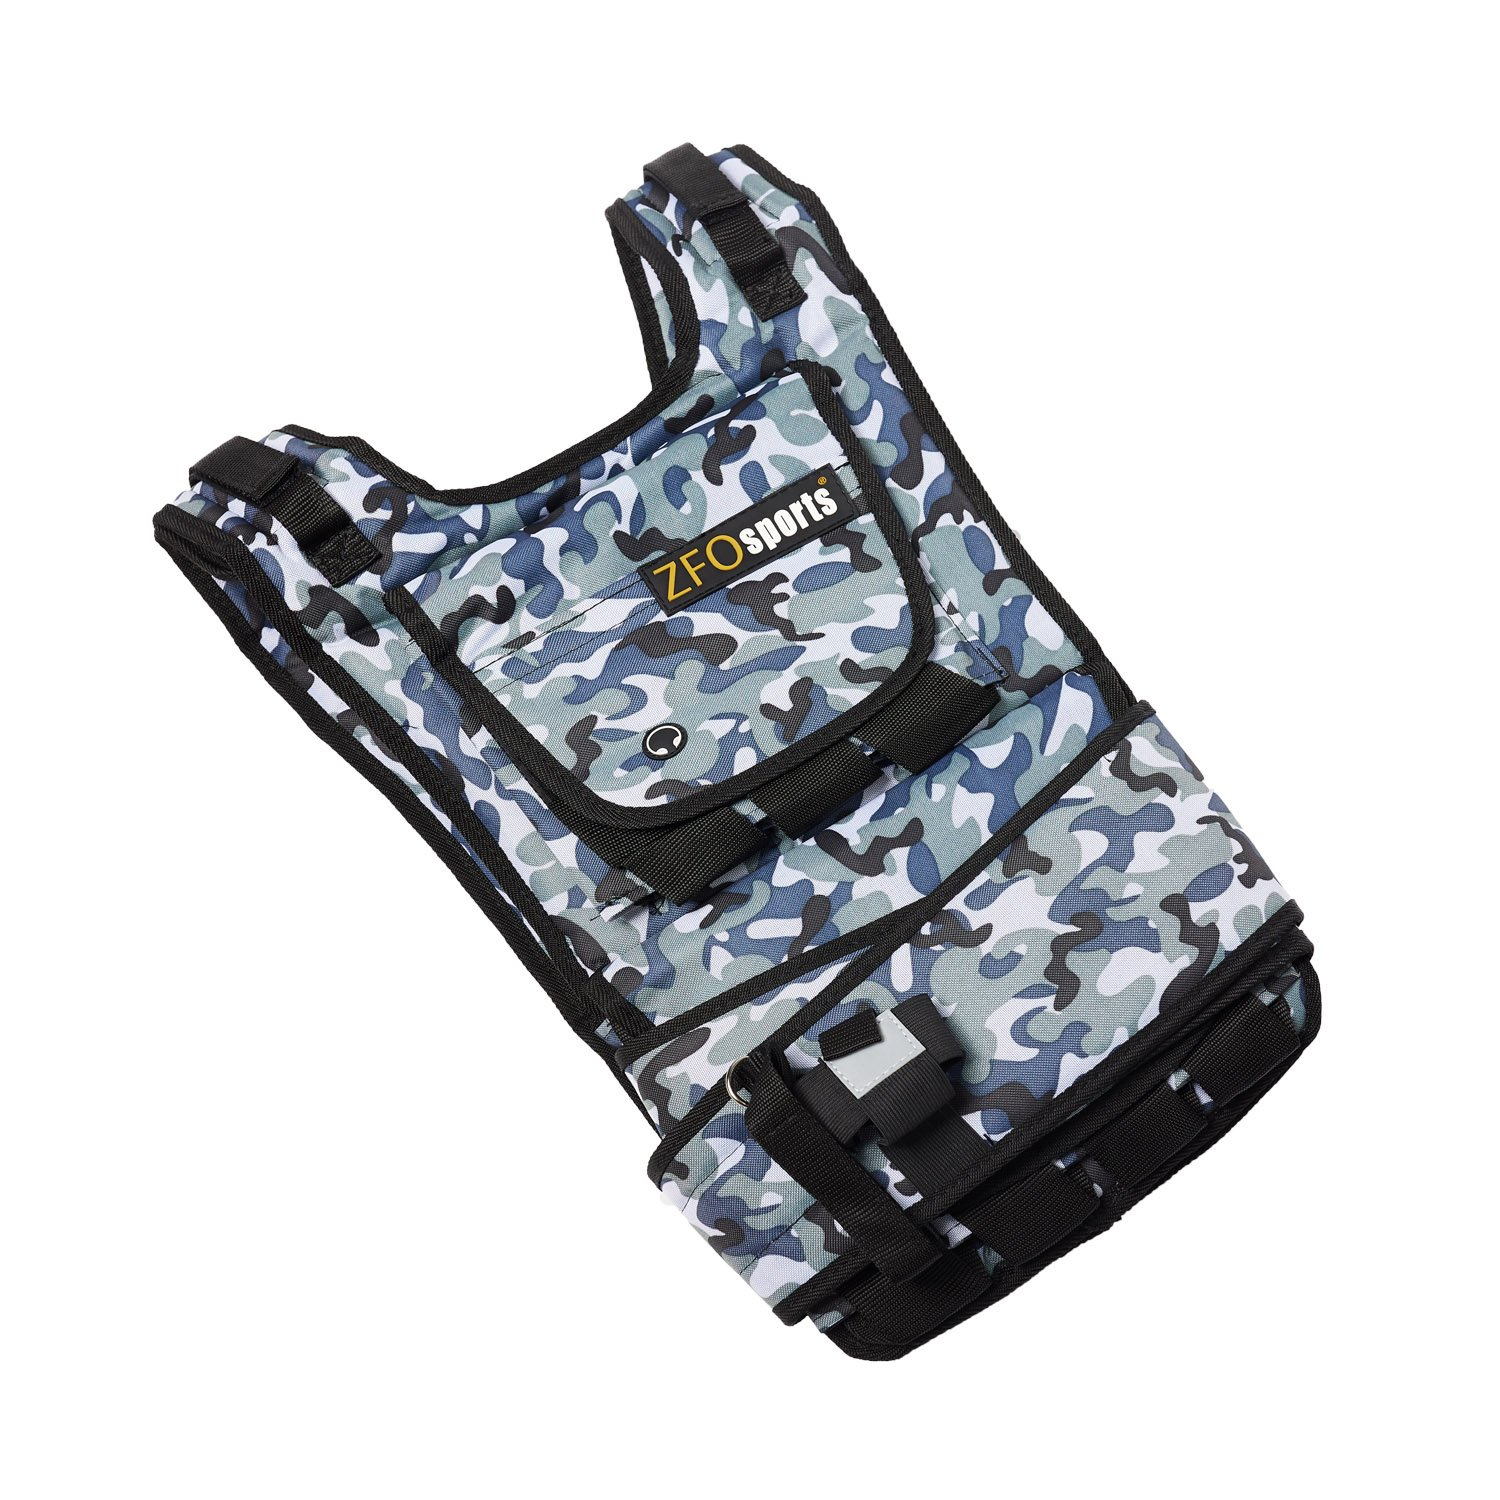 ZFOsports Weighted Vest 40lbs/60lbs/80lbs (Arctic 60LBS)